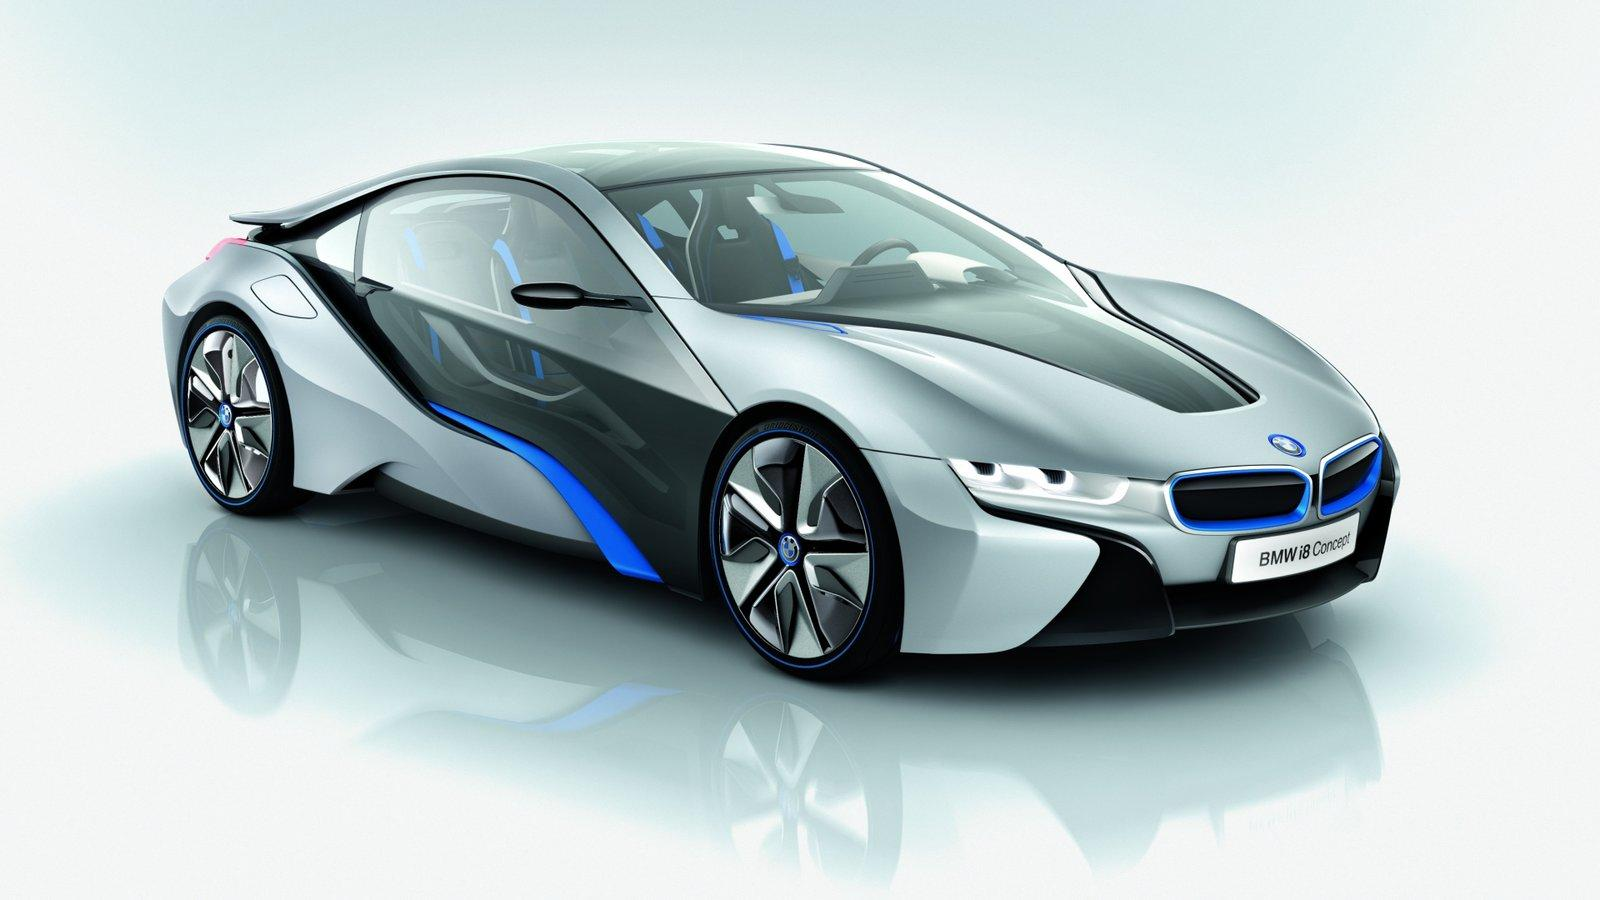 bmw i8 hybrid showcase in india at delhi auto expo 2014 india on roads. Black Bedroom Furniture Sets. Home Design Ideas